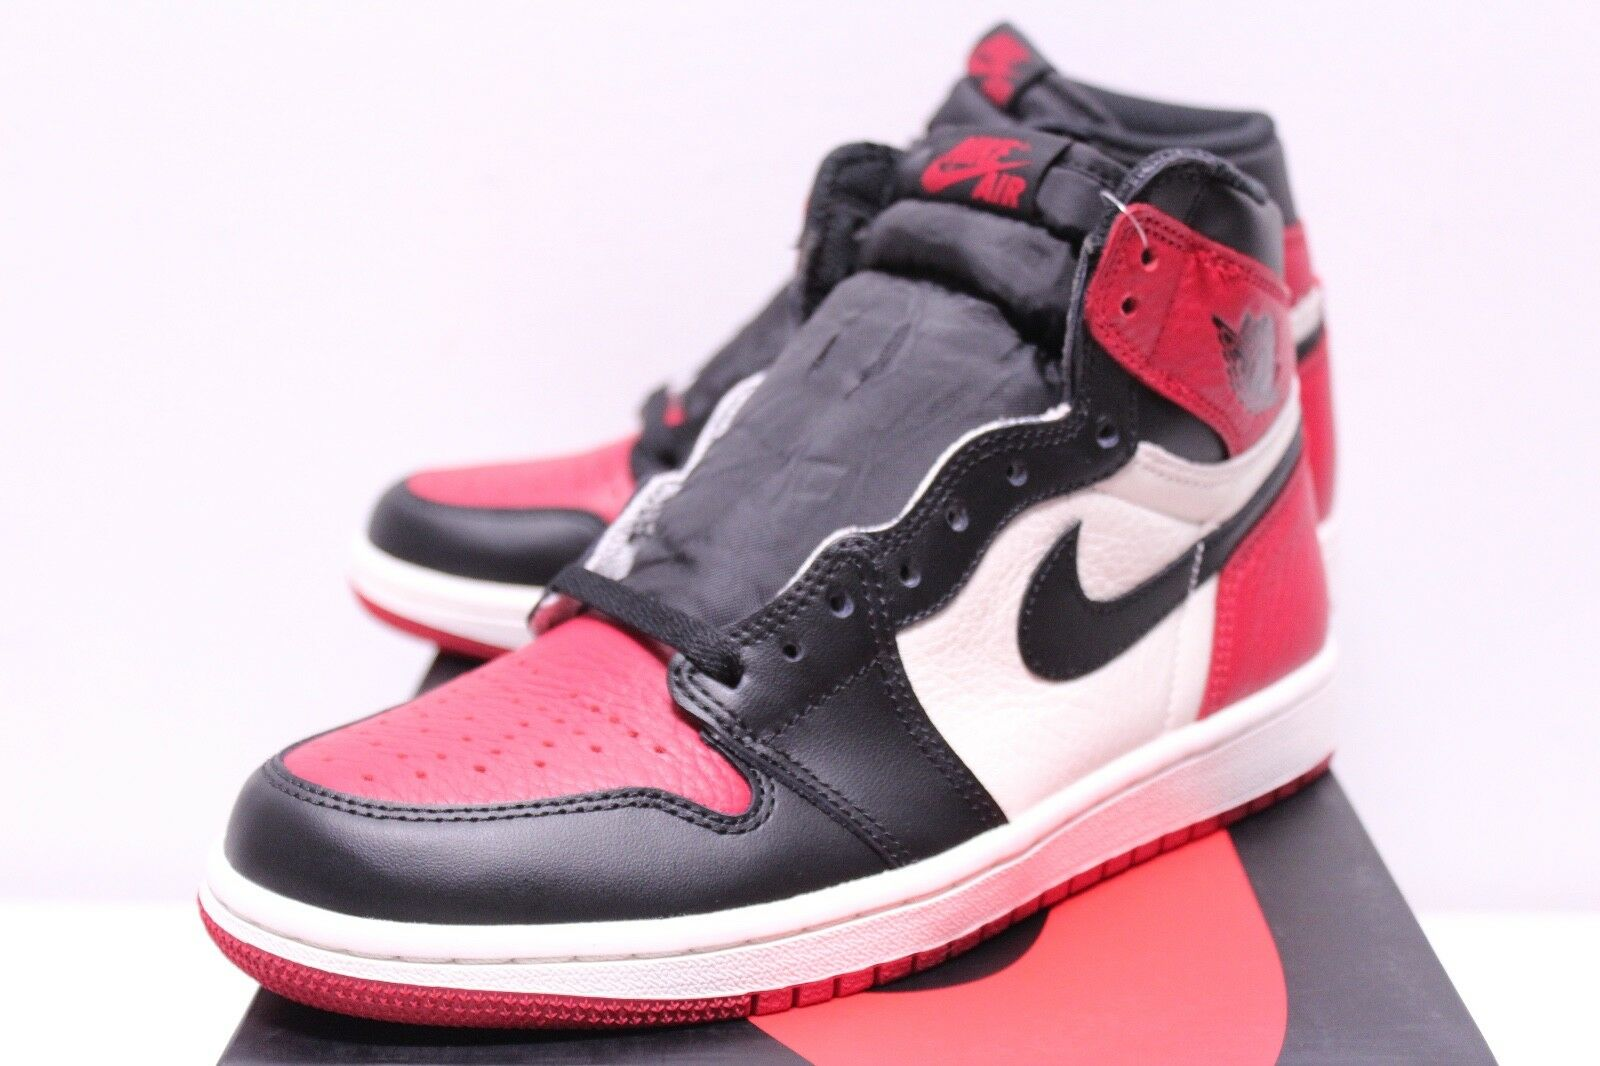 Air Jordan Retro 1 Bred Toe Black Red White Leather Sneakers Men's 7.5-13 New